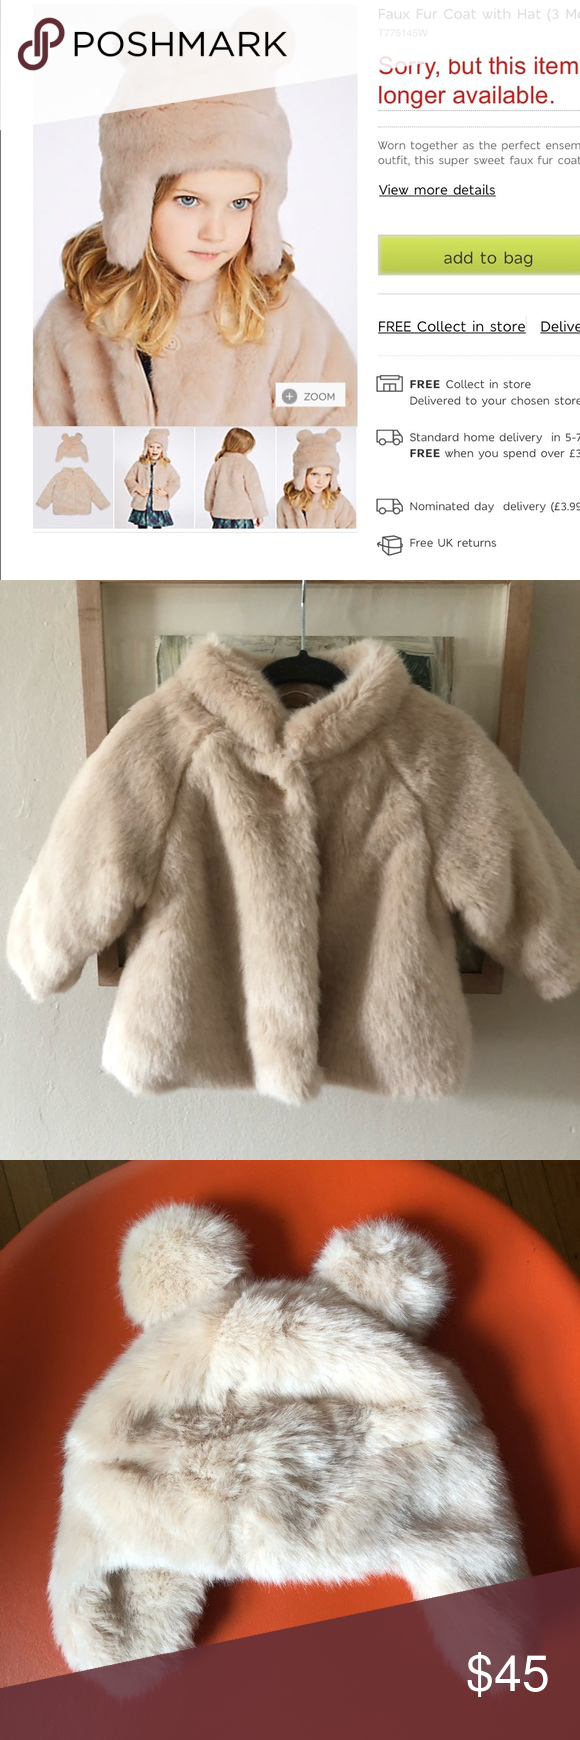 b6792c71a Marks and Spencer Baby Girl Faux Fur Coat with Hat A very pretty set ...